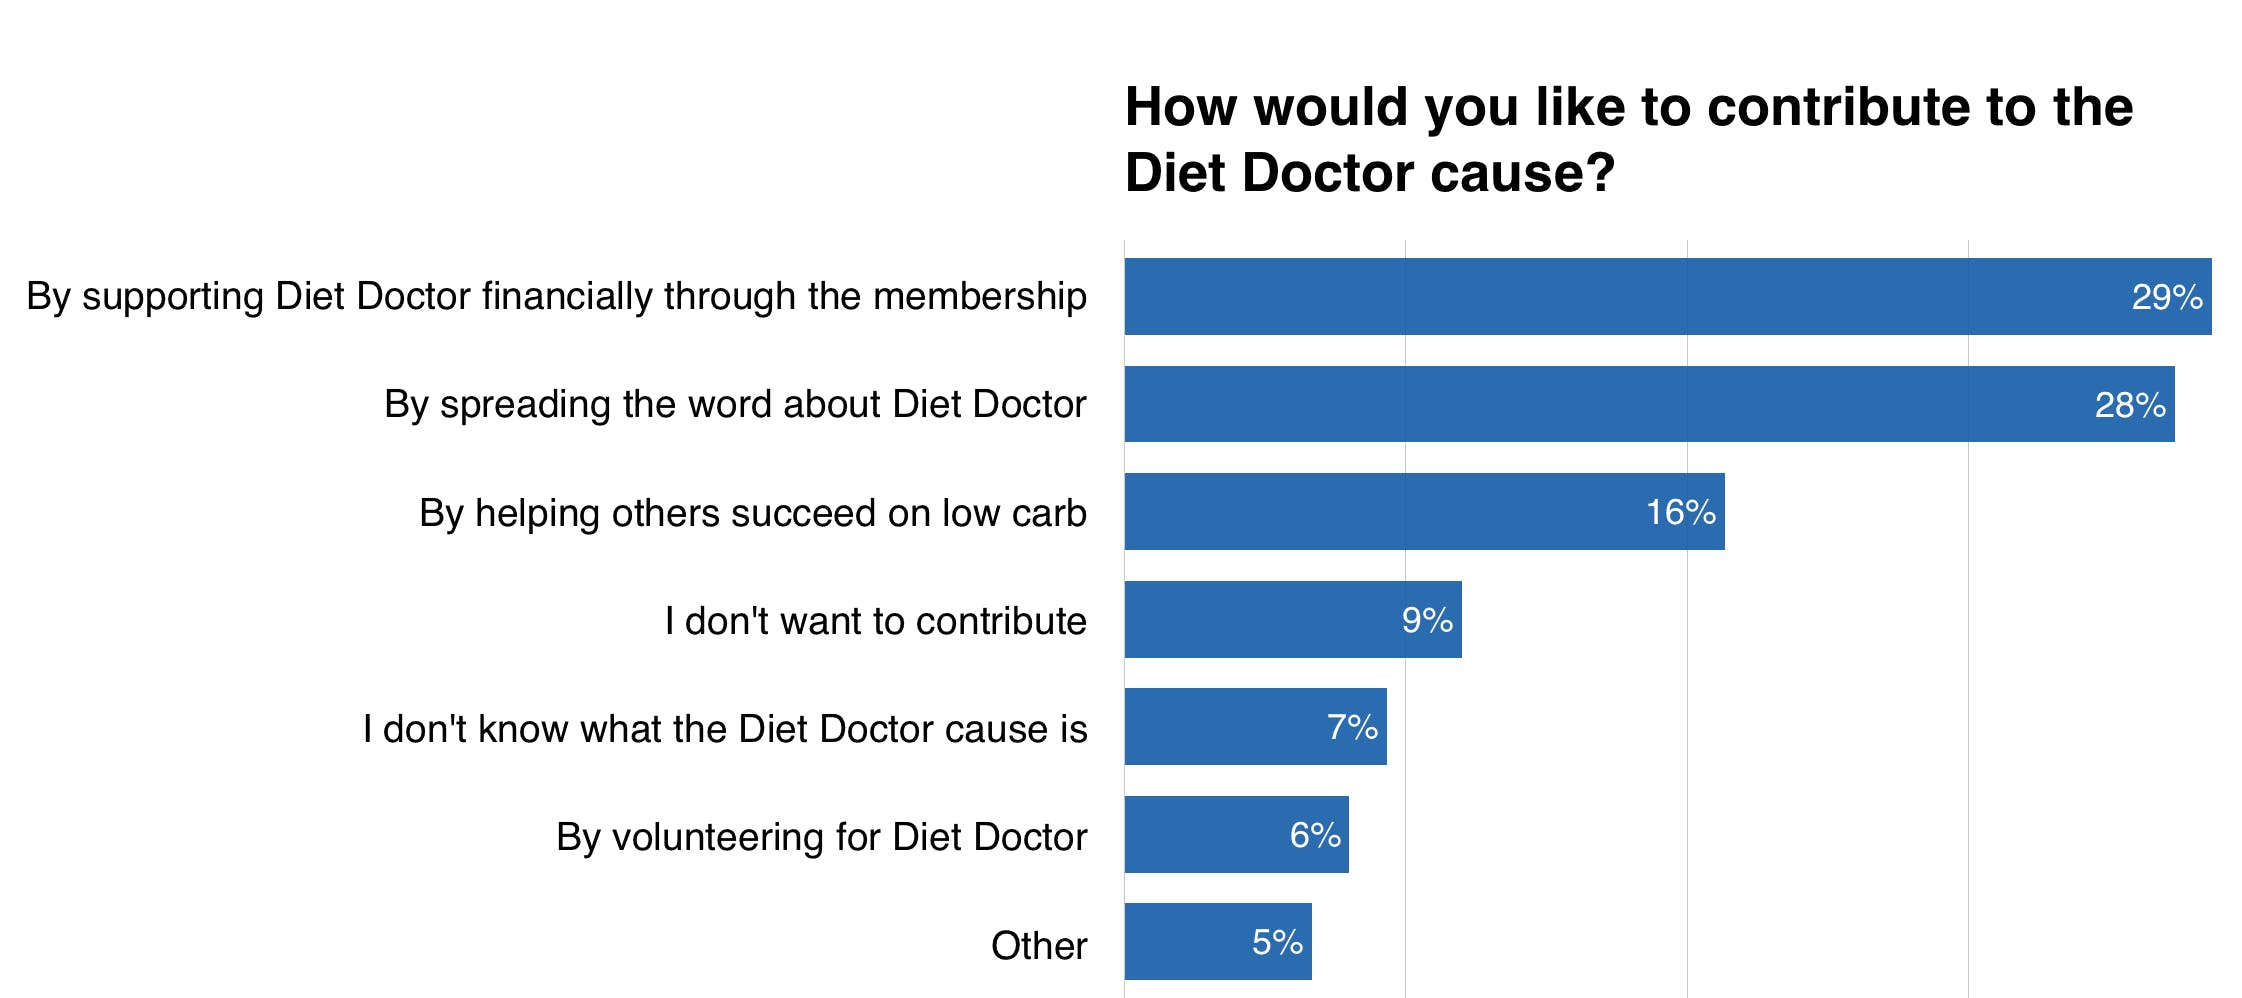 The Diet Doctor purpose: How would you like to contribute?